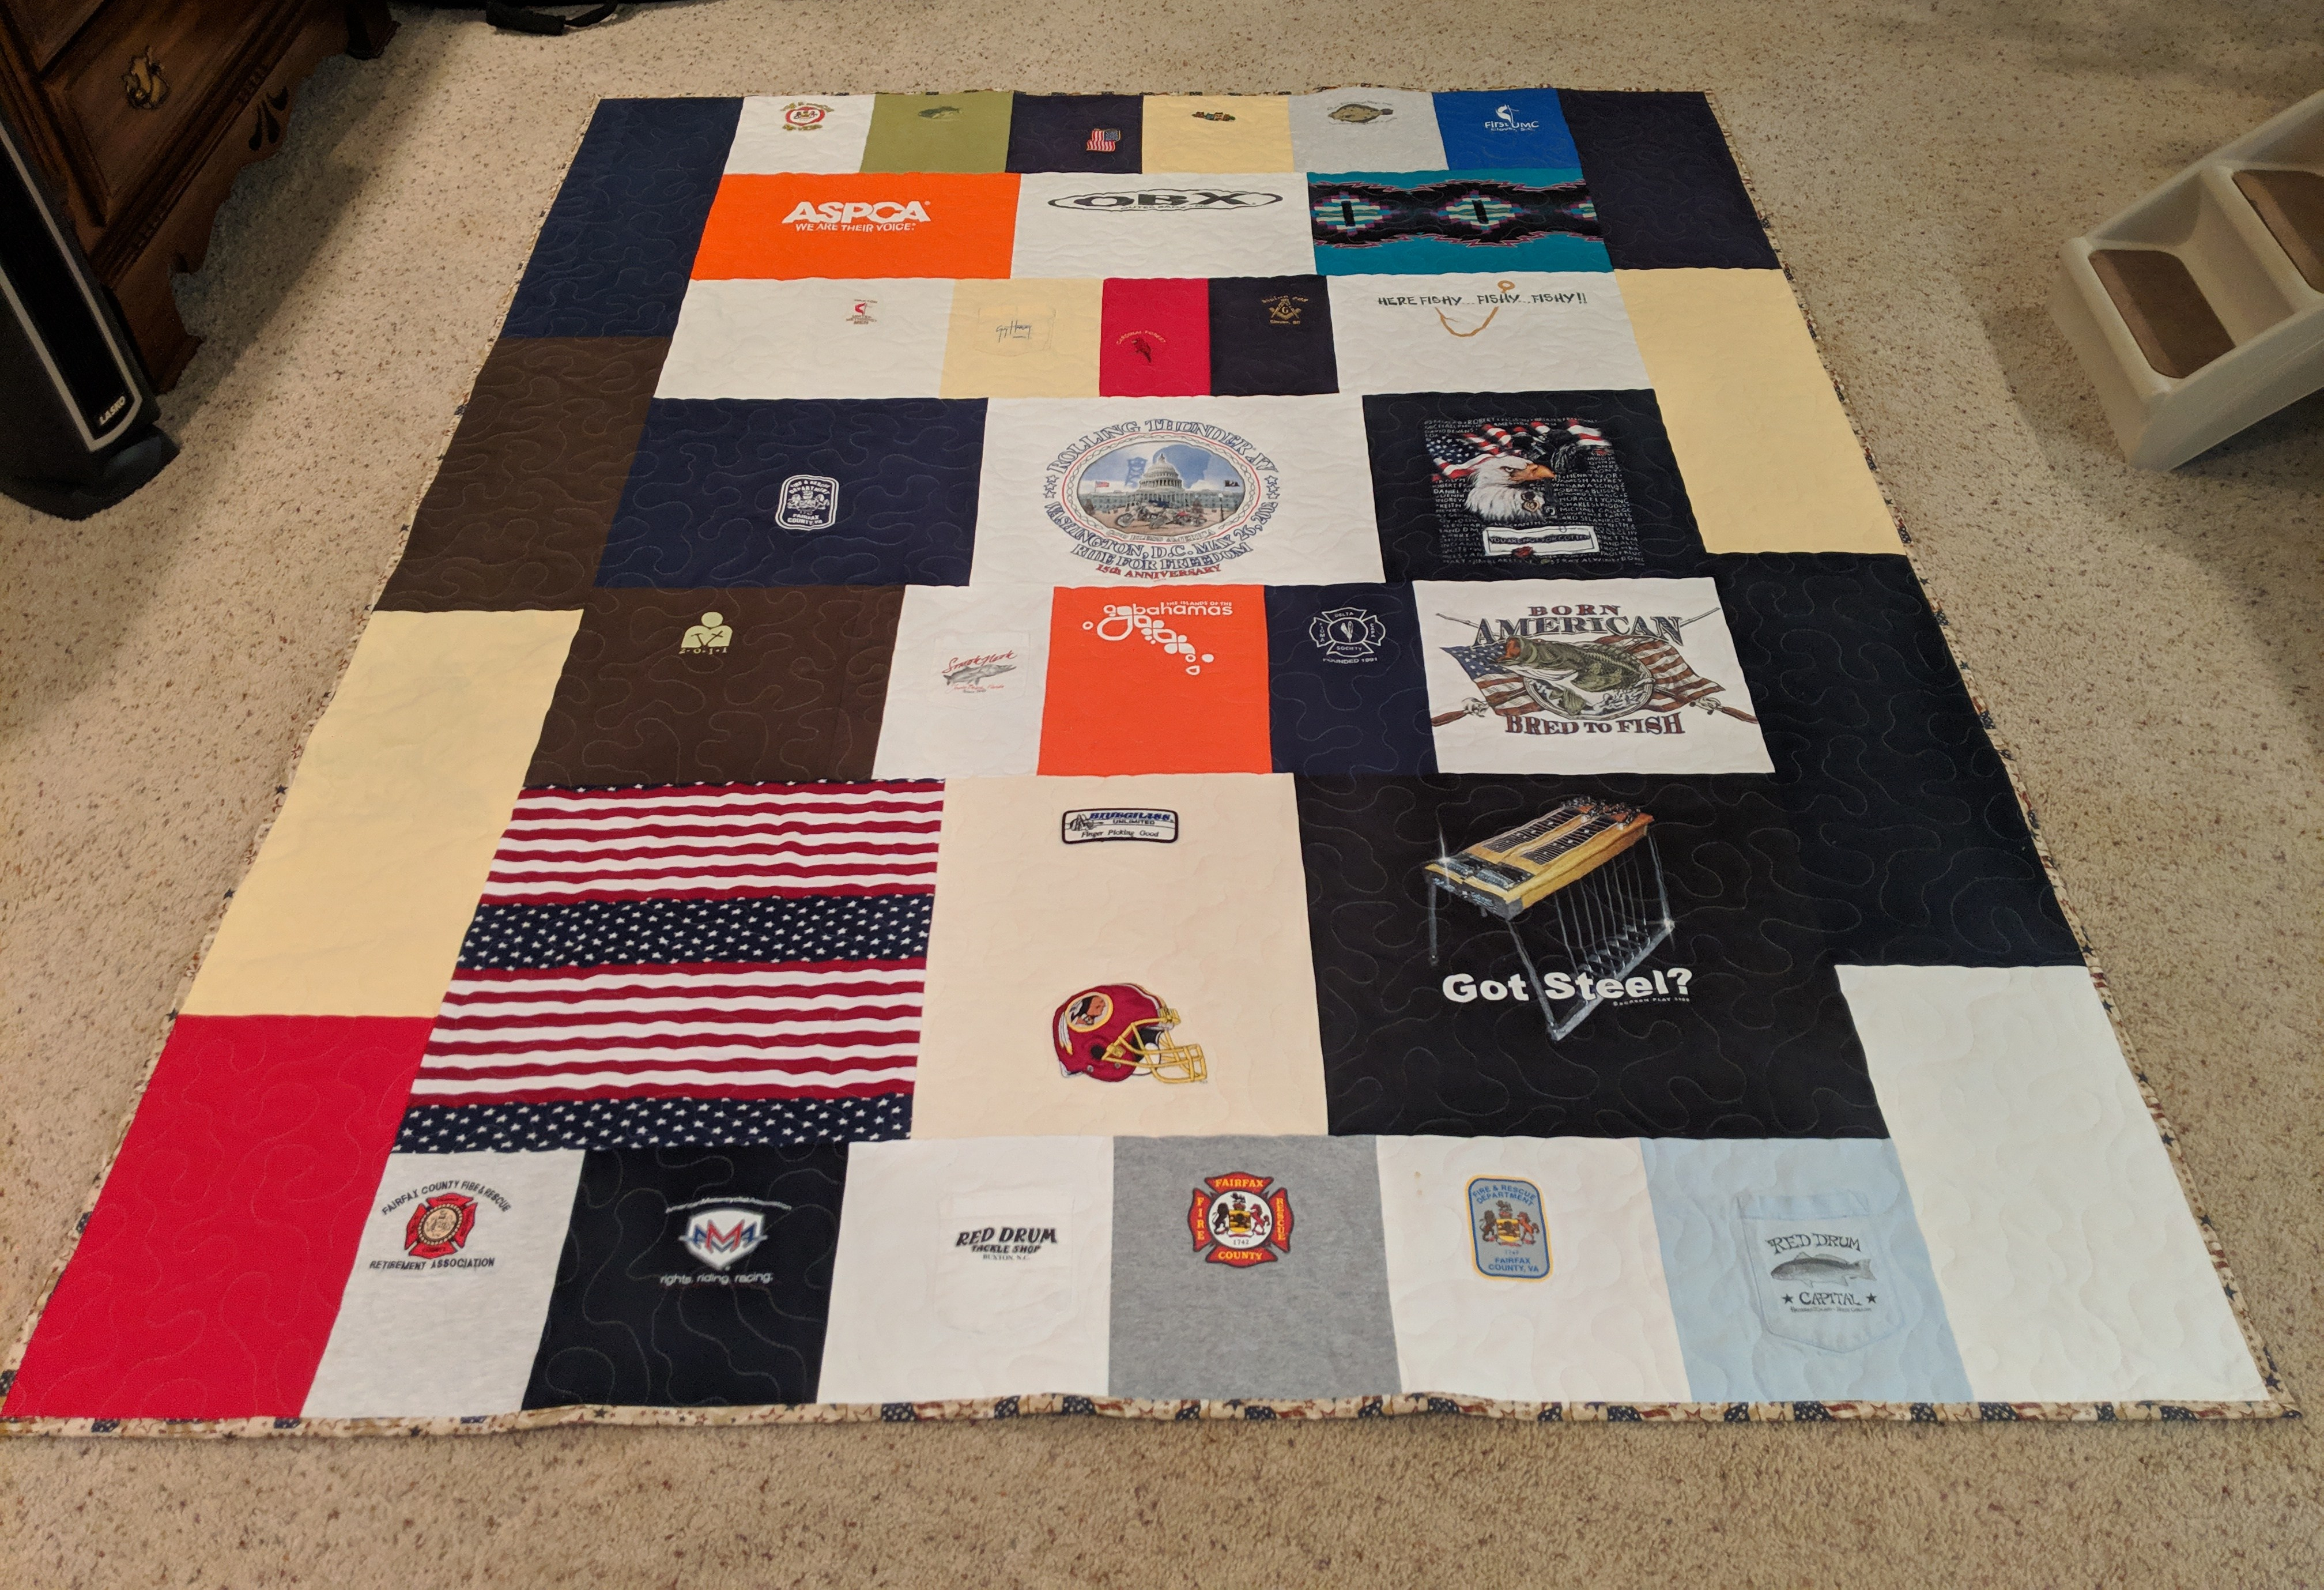 Melvas completed quilt